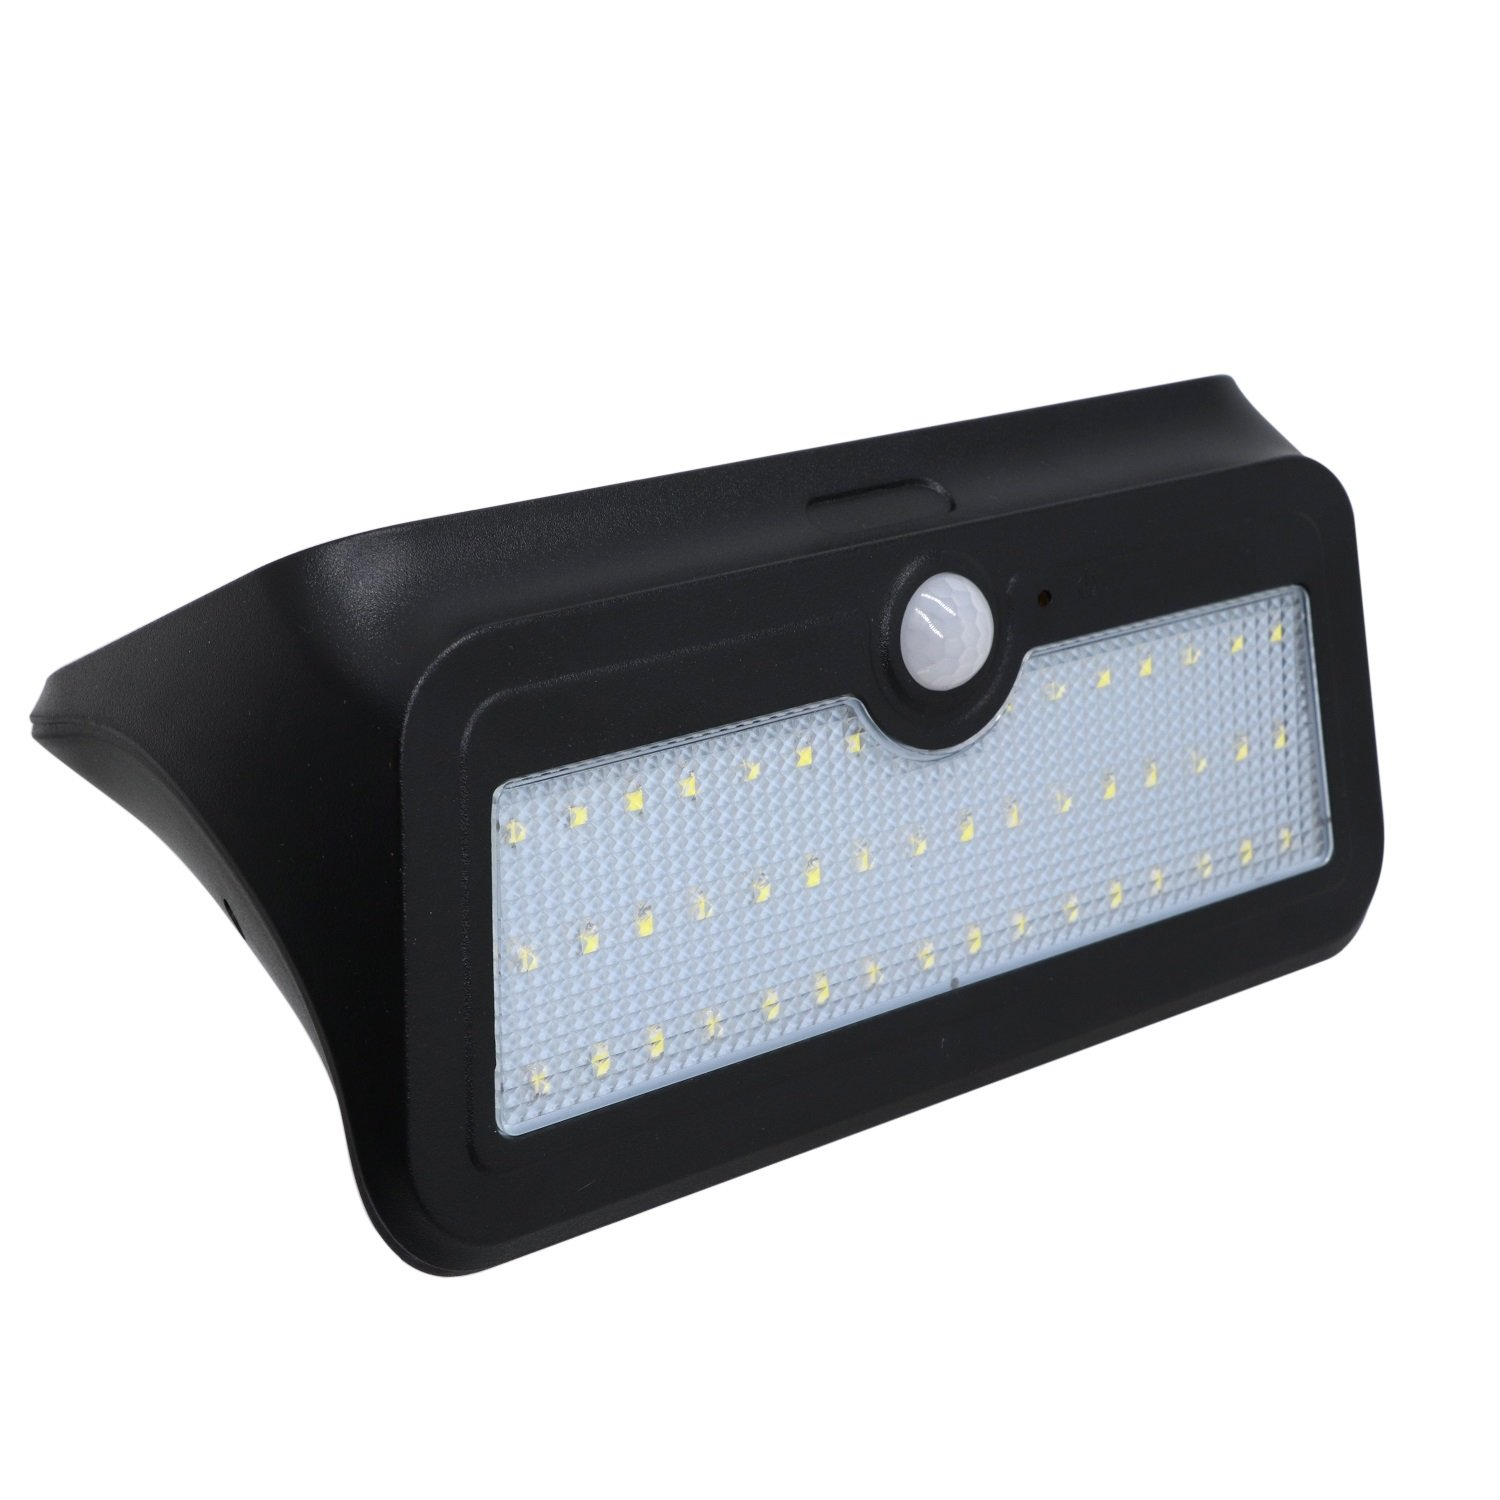 46LED 4.5Watts Waterproof LED Easy-to-Install Security Lights Solar Light Lamps Garden Lights Outdoor Landscape Lawn Lamp Wall Lamps (1Pcs) Safety (Color : Black)